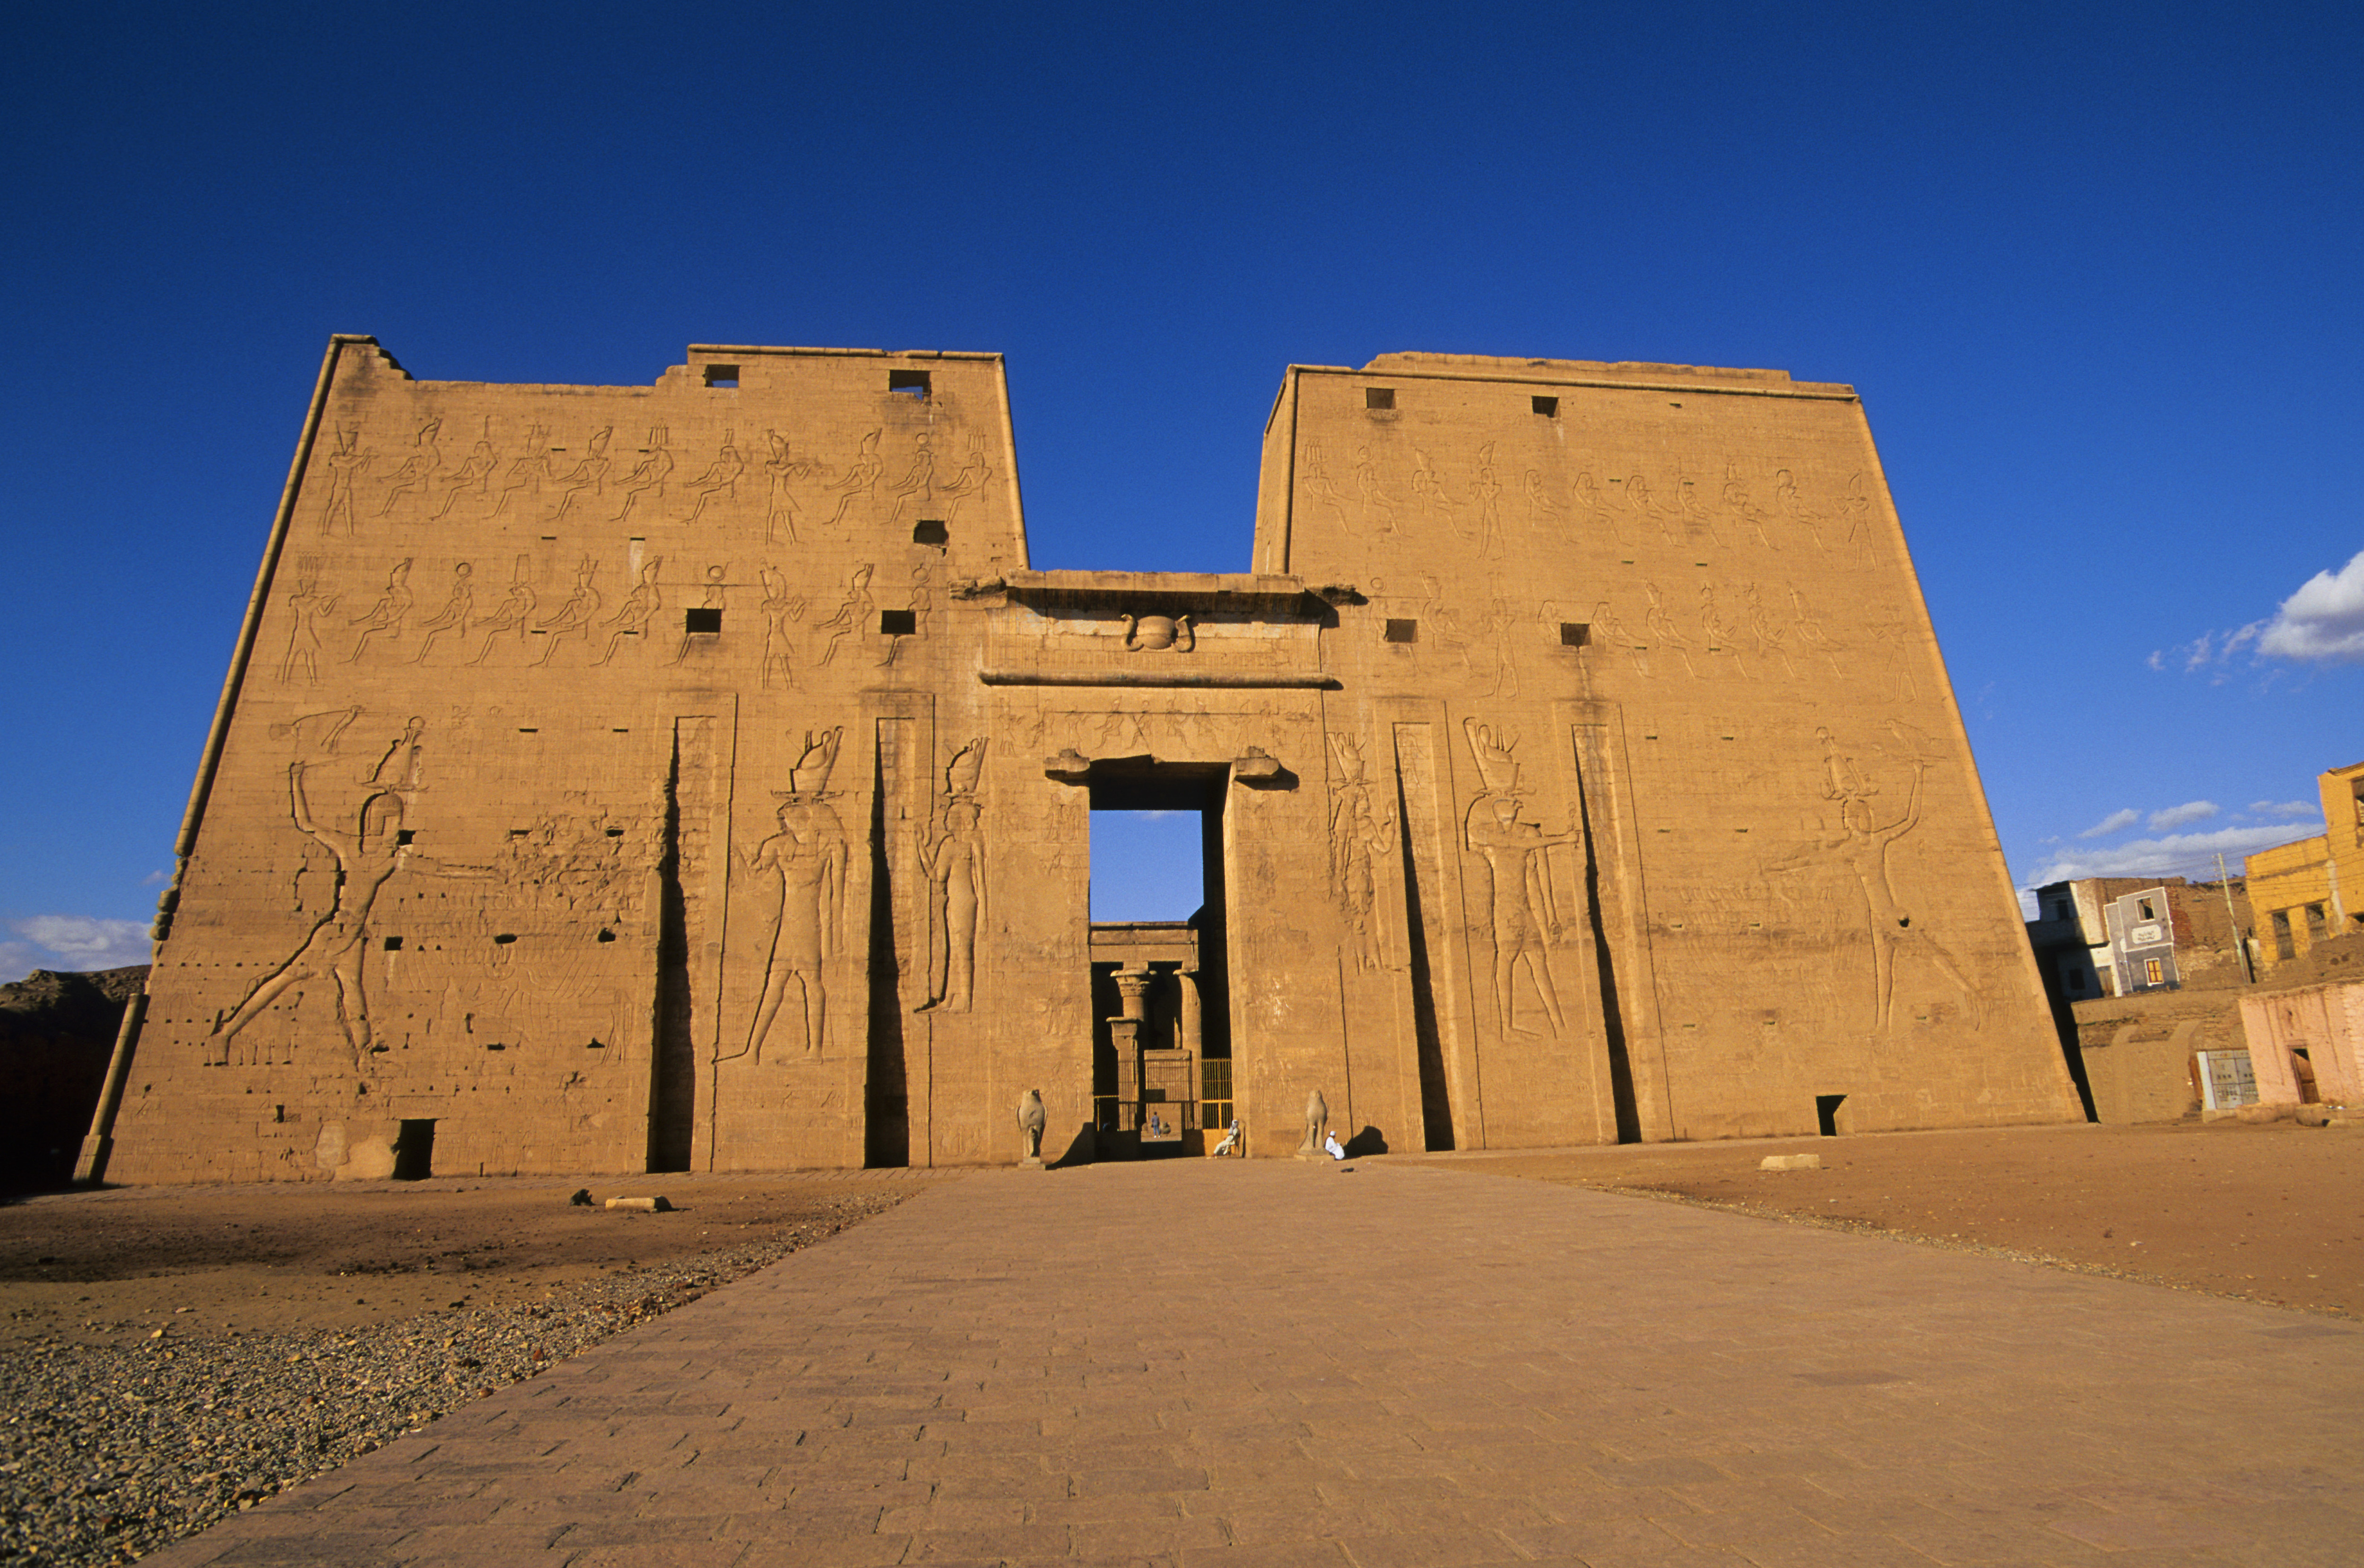 Evidence of Beer-making Found in Epic Ancient Egyptian Ruins